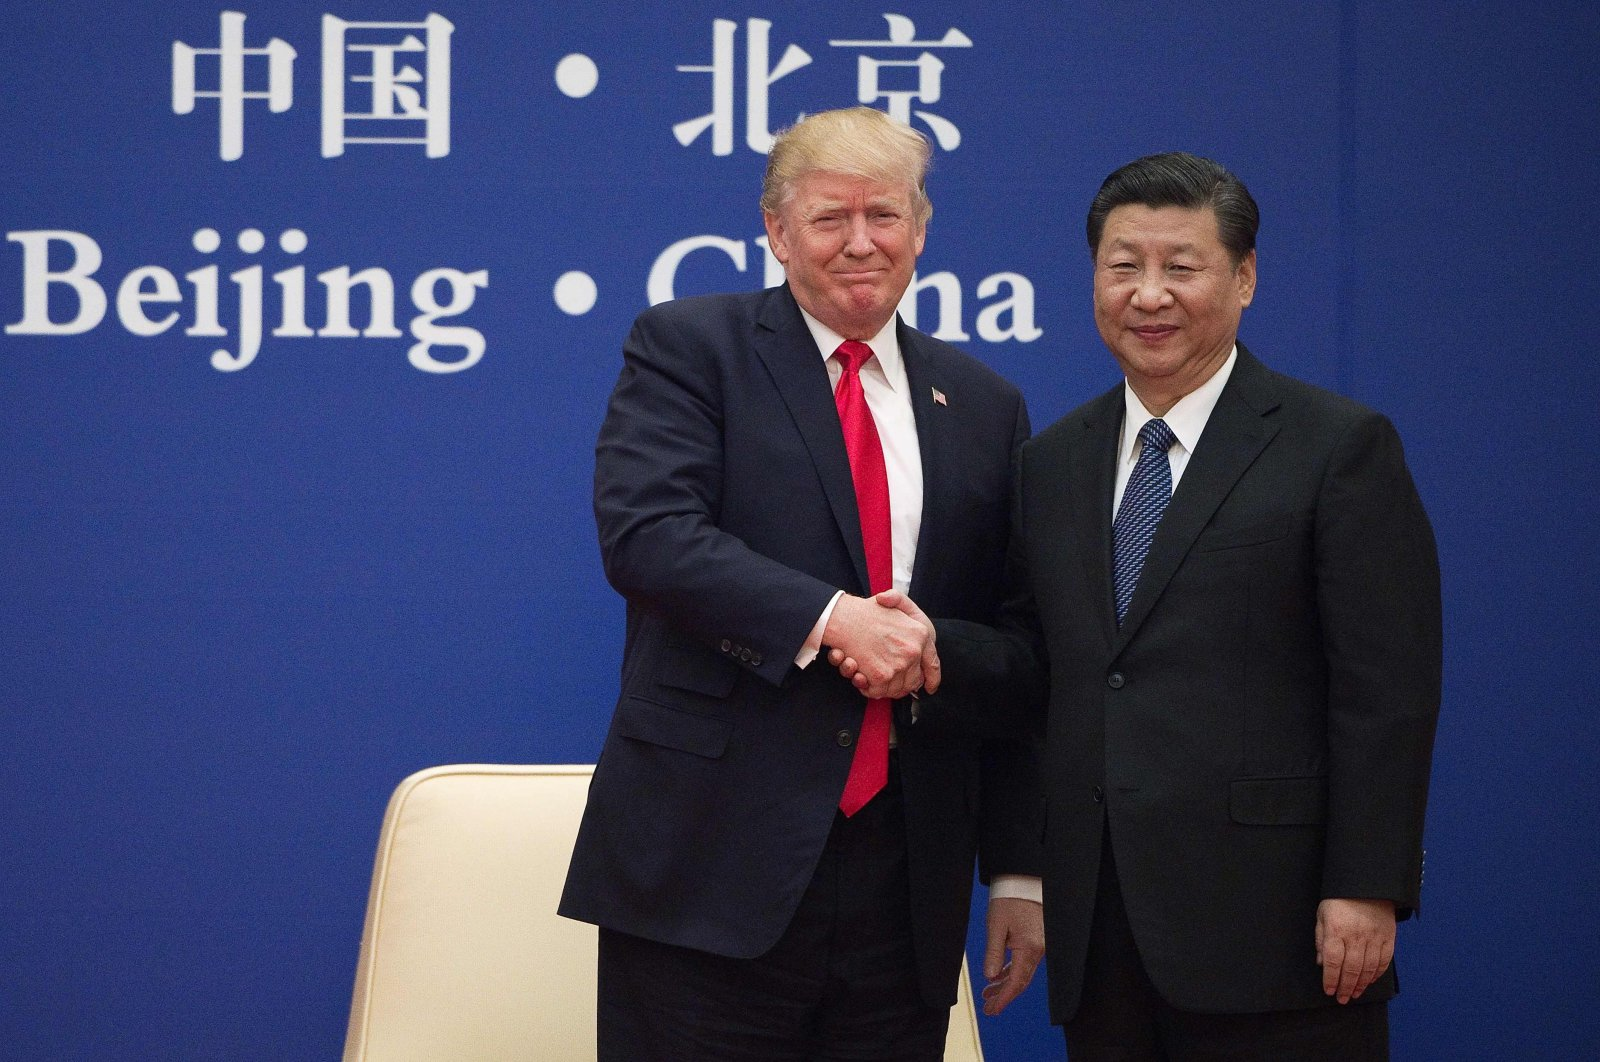 U.S. President Donald Trump and Chinese President Xi Jinping shake hands during a news conference at the Great Hall of the People (GHOP) in Beijing, China, Nov. 9, 2017. (EPA-EFE Photo)